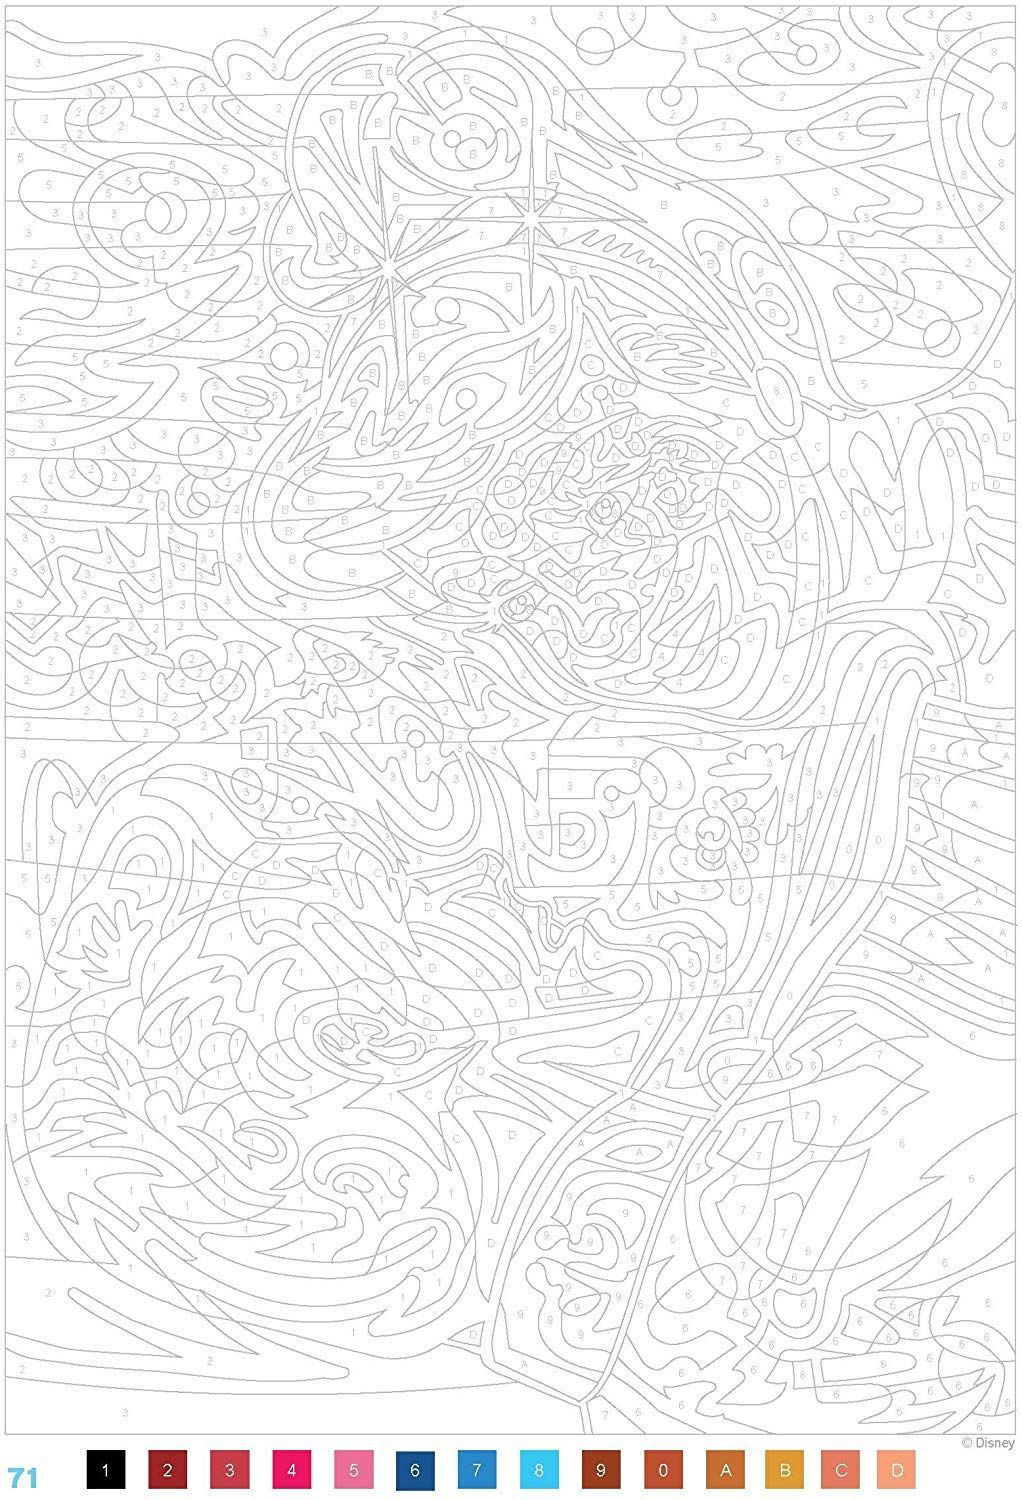 26 Coloriages Anti Stress Mystere Disney Fnac  Coloriage mystere